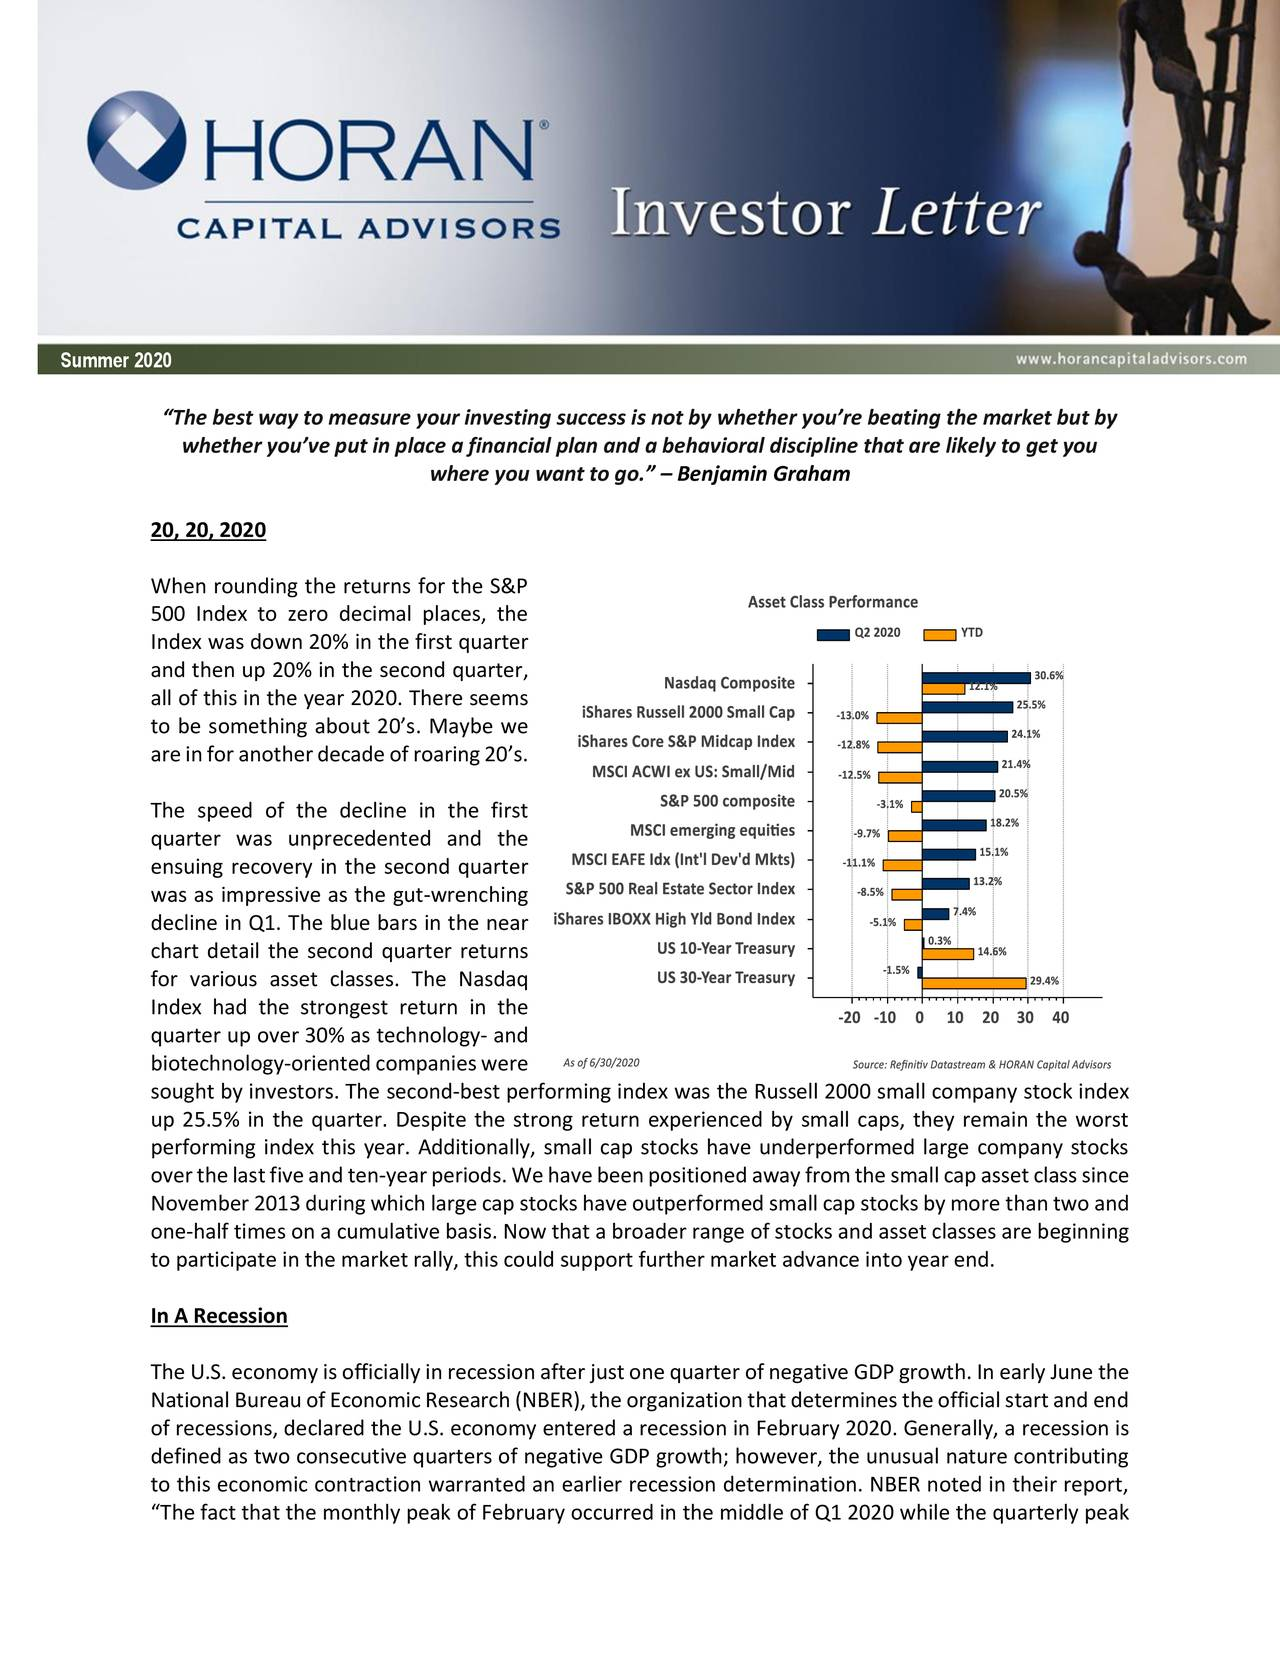 Summer 2020 Investor Letter: A 'V-Shaped' Market Recovery